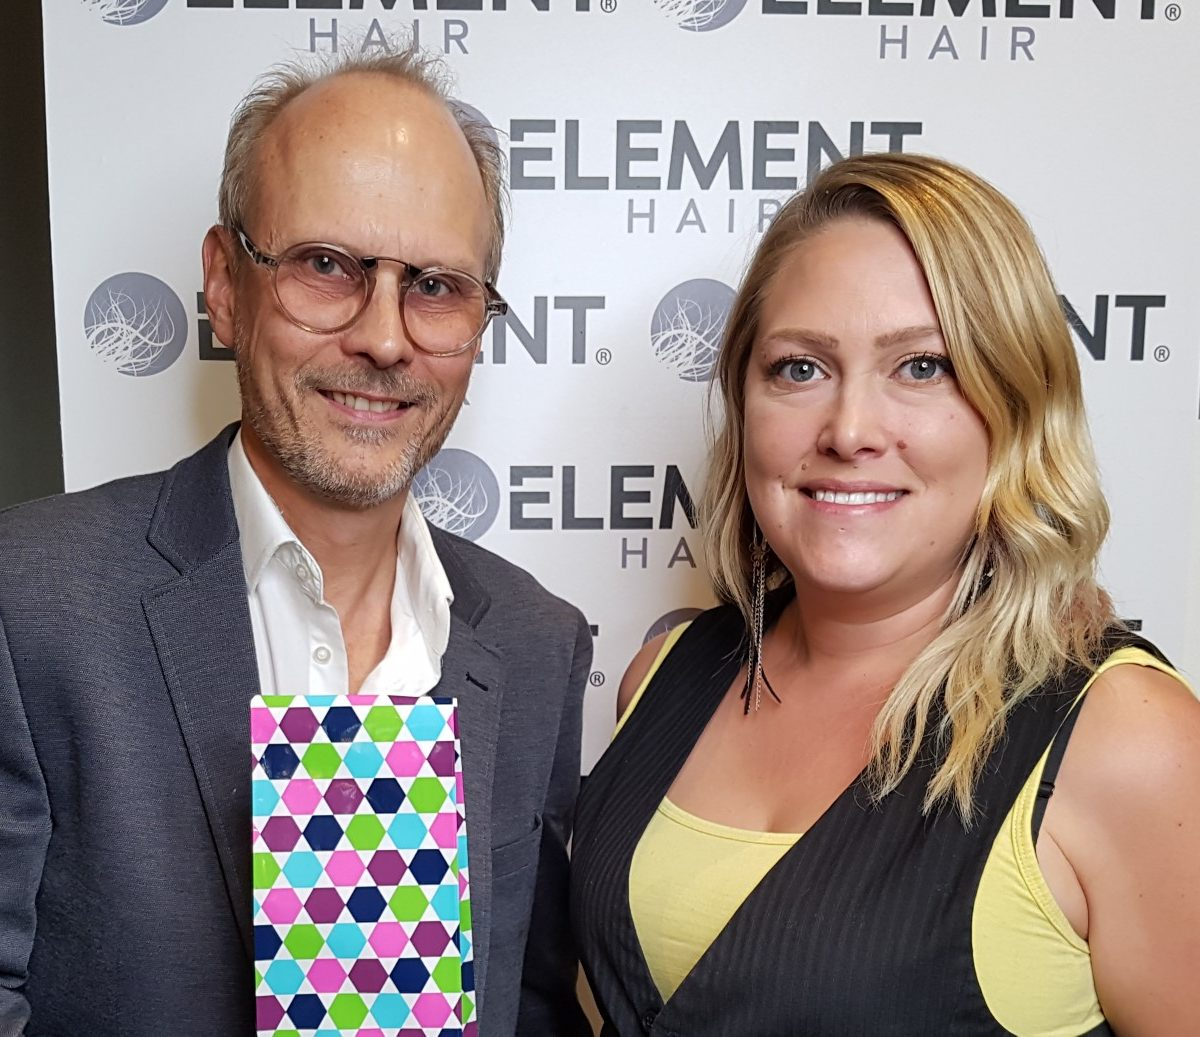 Kristie's 4 year Anniversary with Element Hair! (Left) Lance Nielsen, co-owner and director, presents (right) Kristie with a gift in recognition of her achievement.